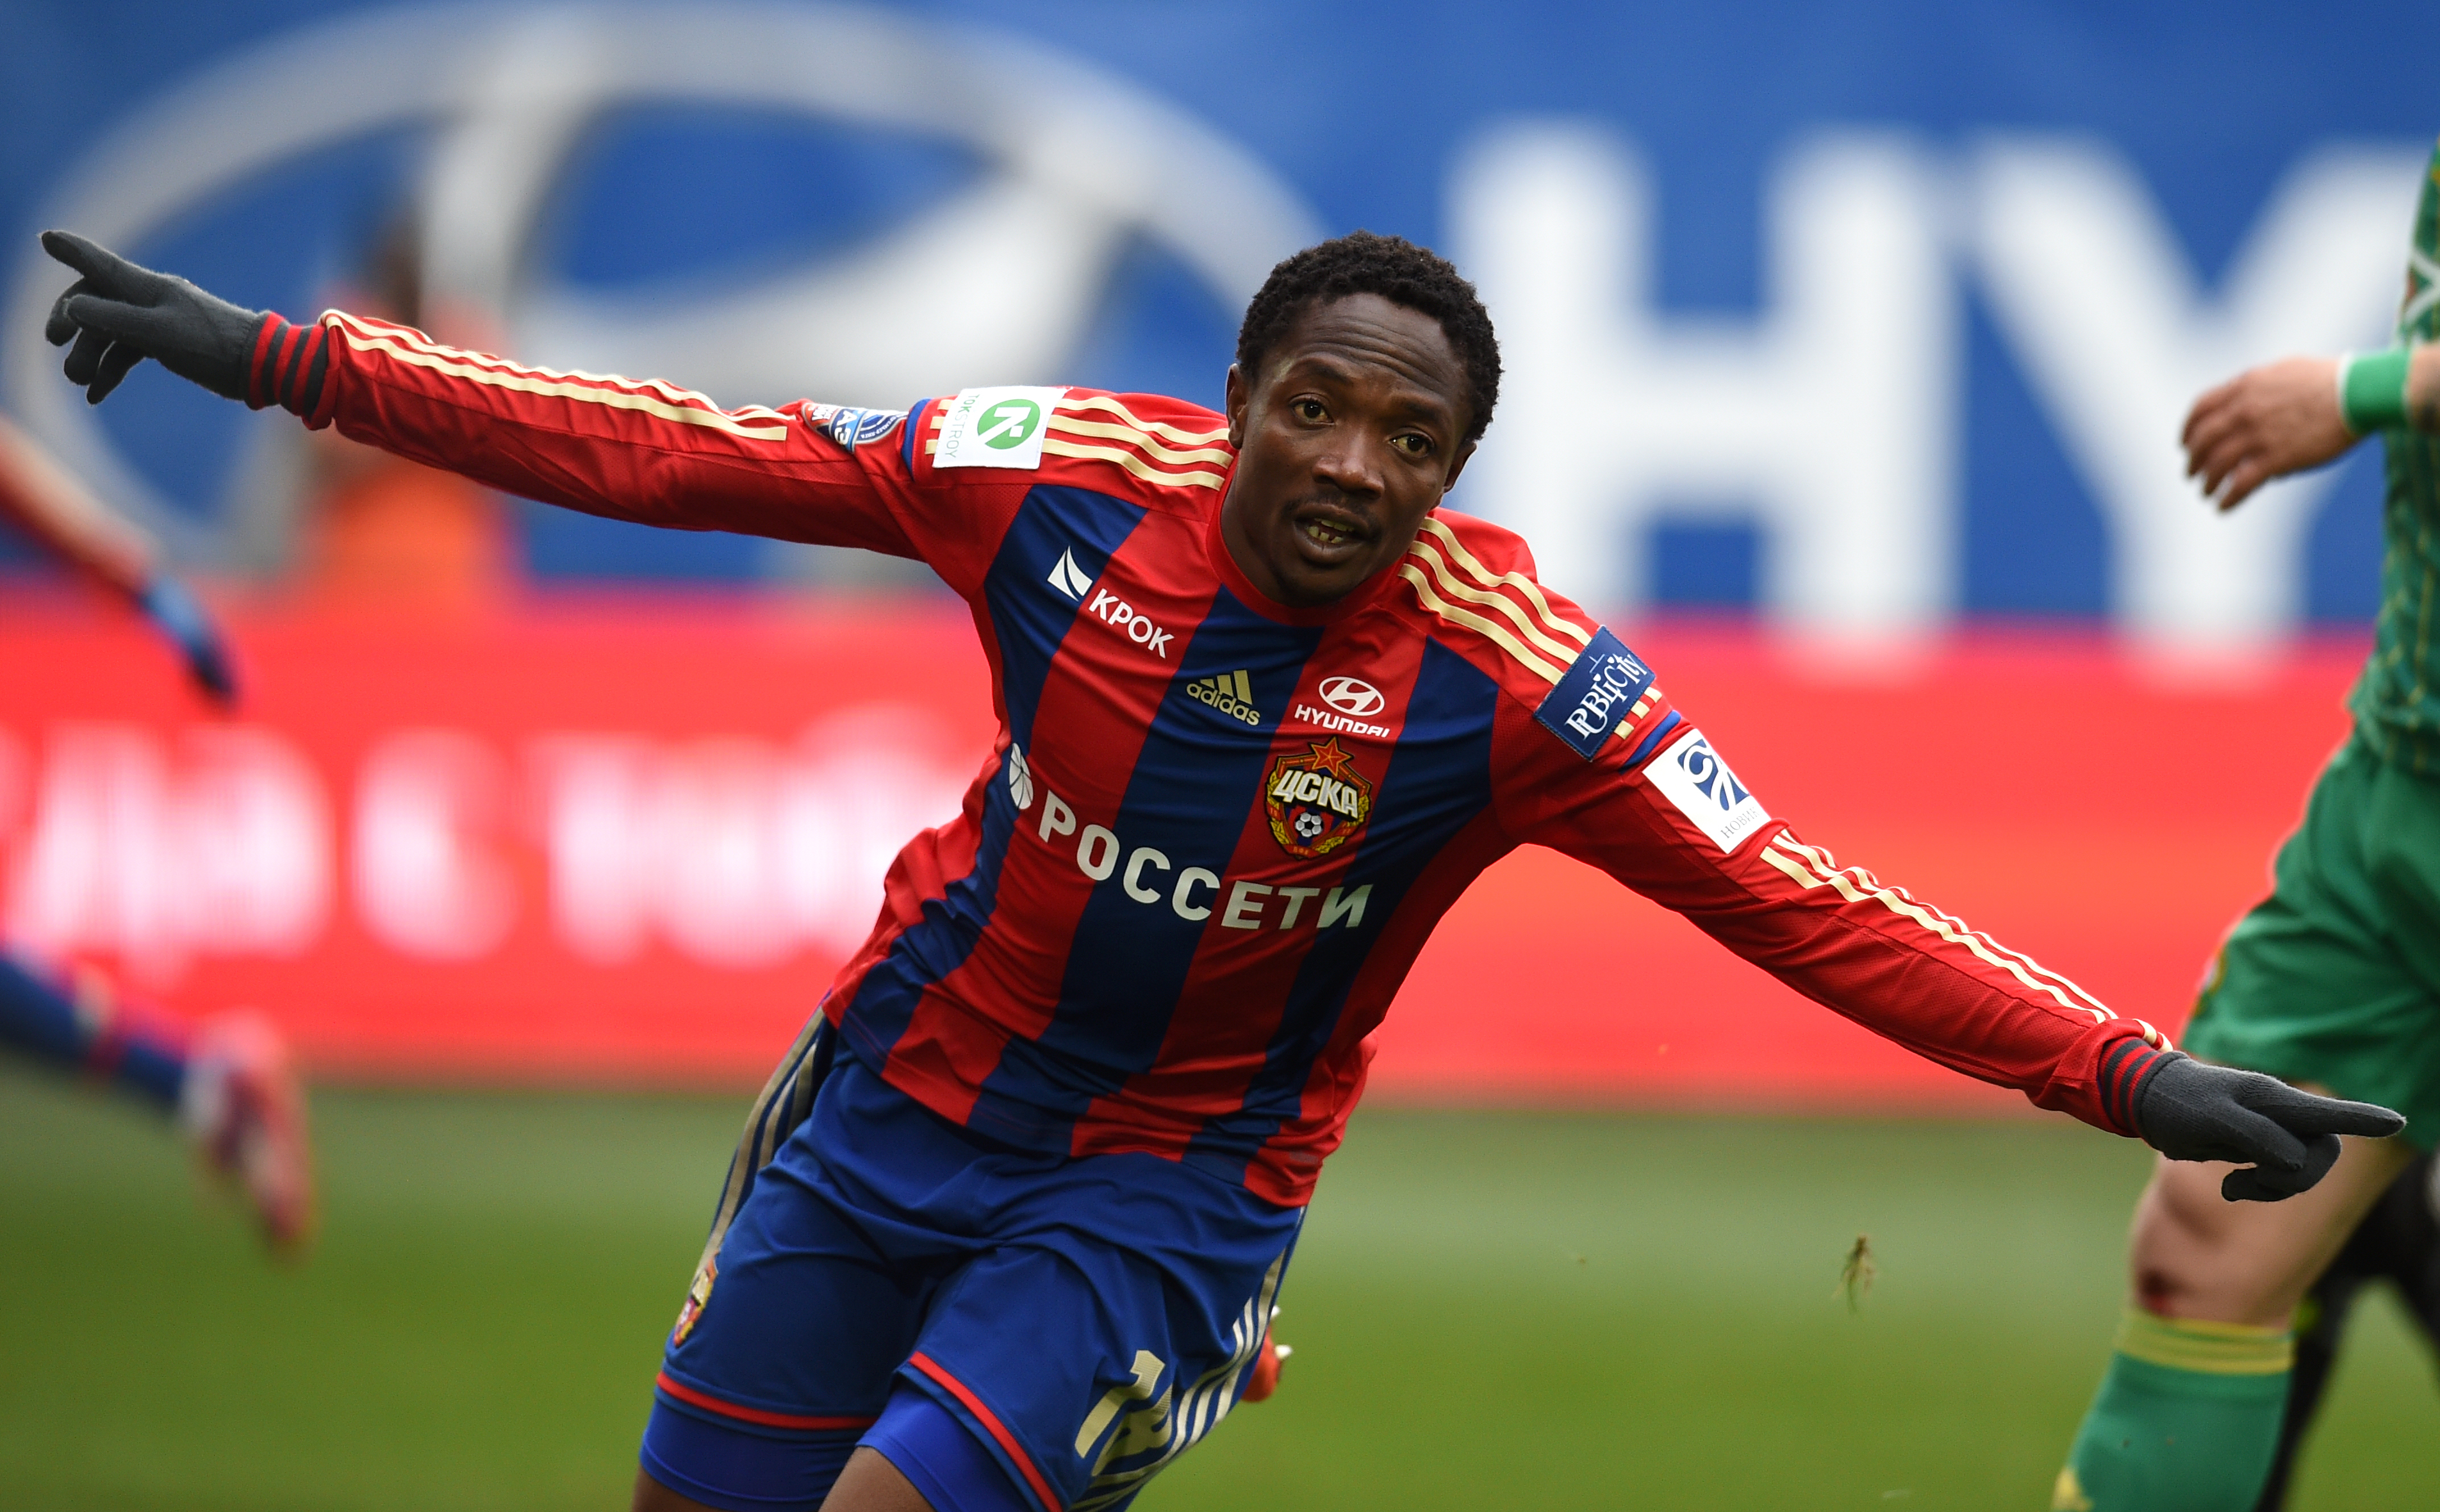 Ahmed Musa reveals former Arsenal man Nwankwo Kanu convinced him Leicester City was the right move